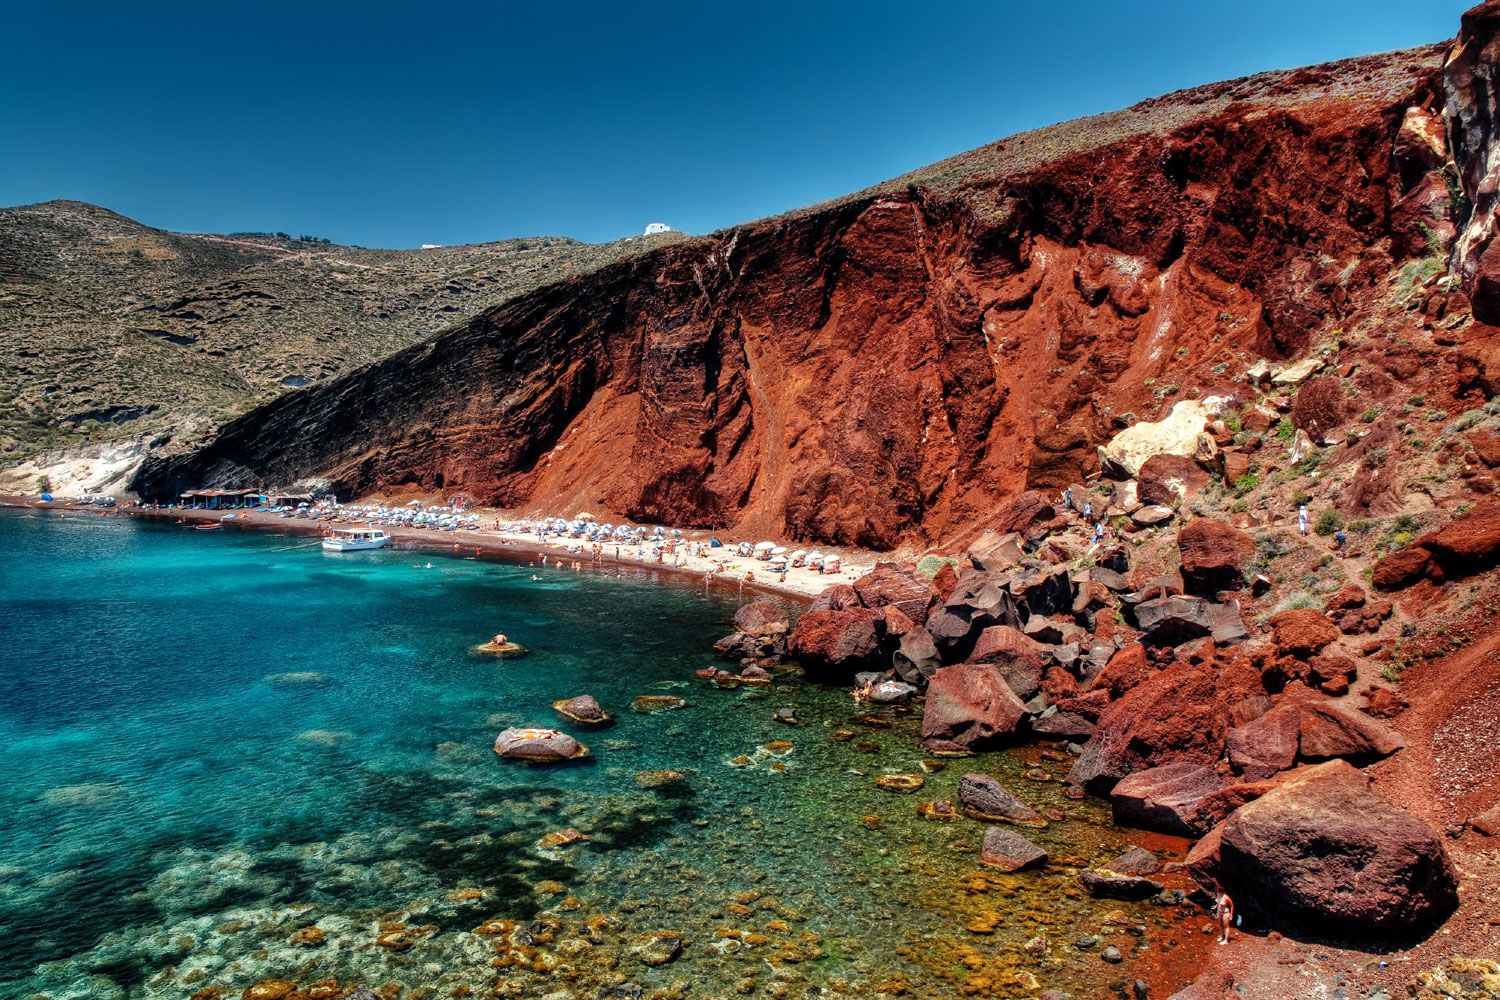 The red beach is undoubtedly one of the most popular in the island of Santorini, famed for its titular red-hued sand. Photo source: santorini-view.com